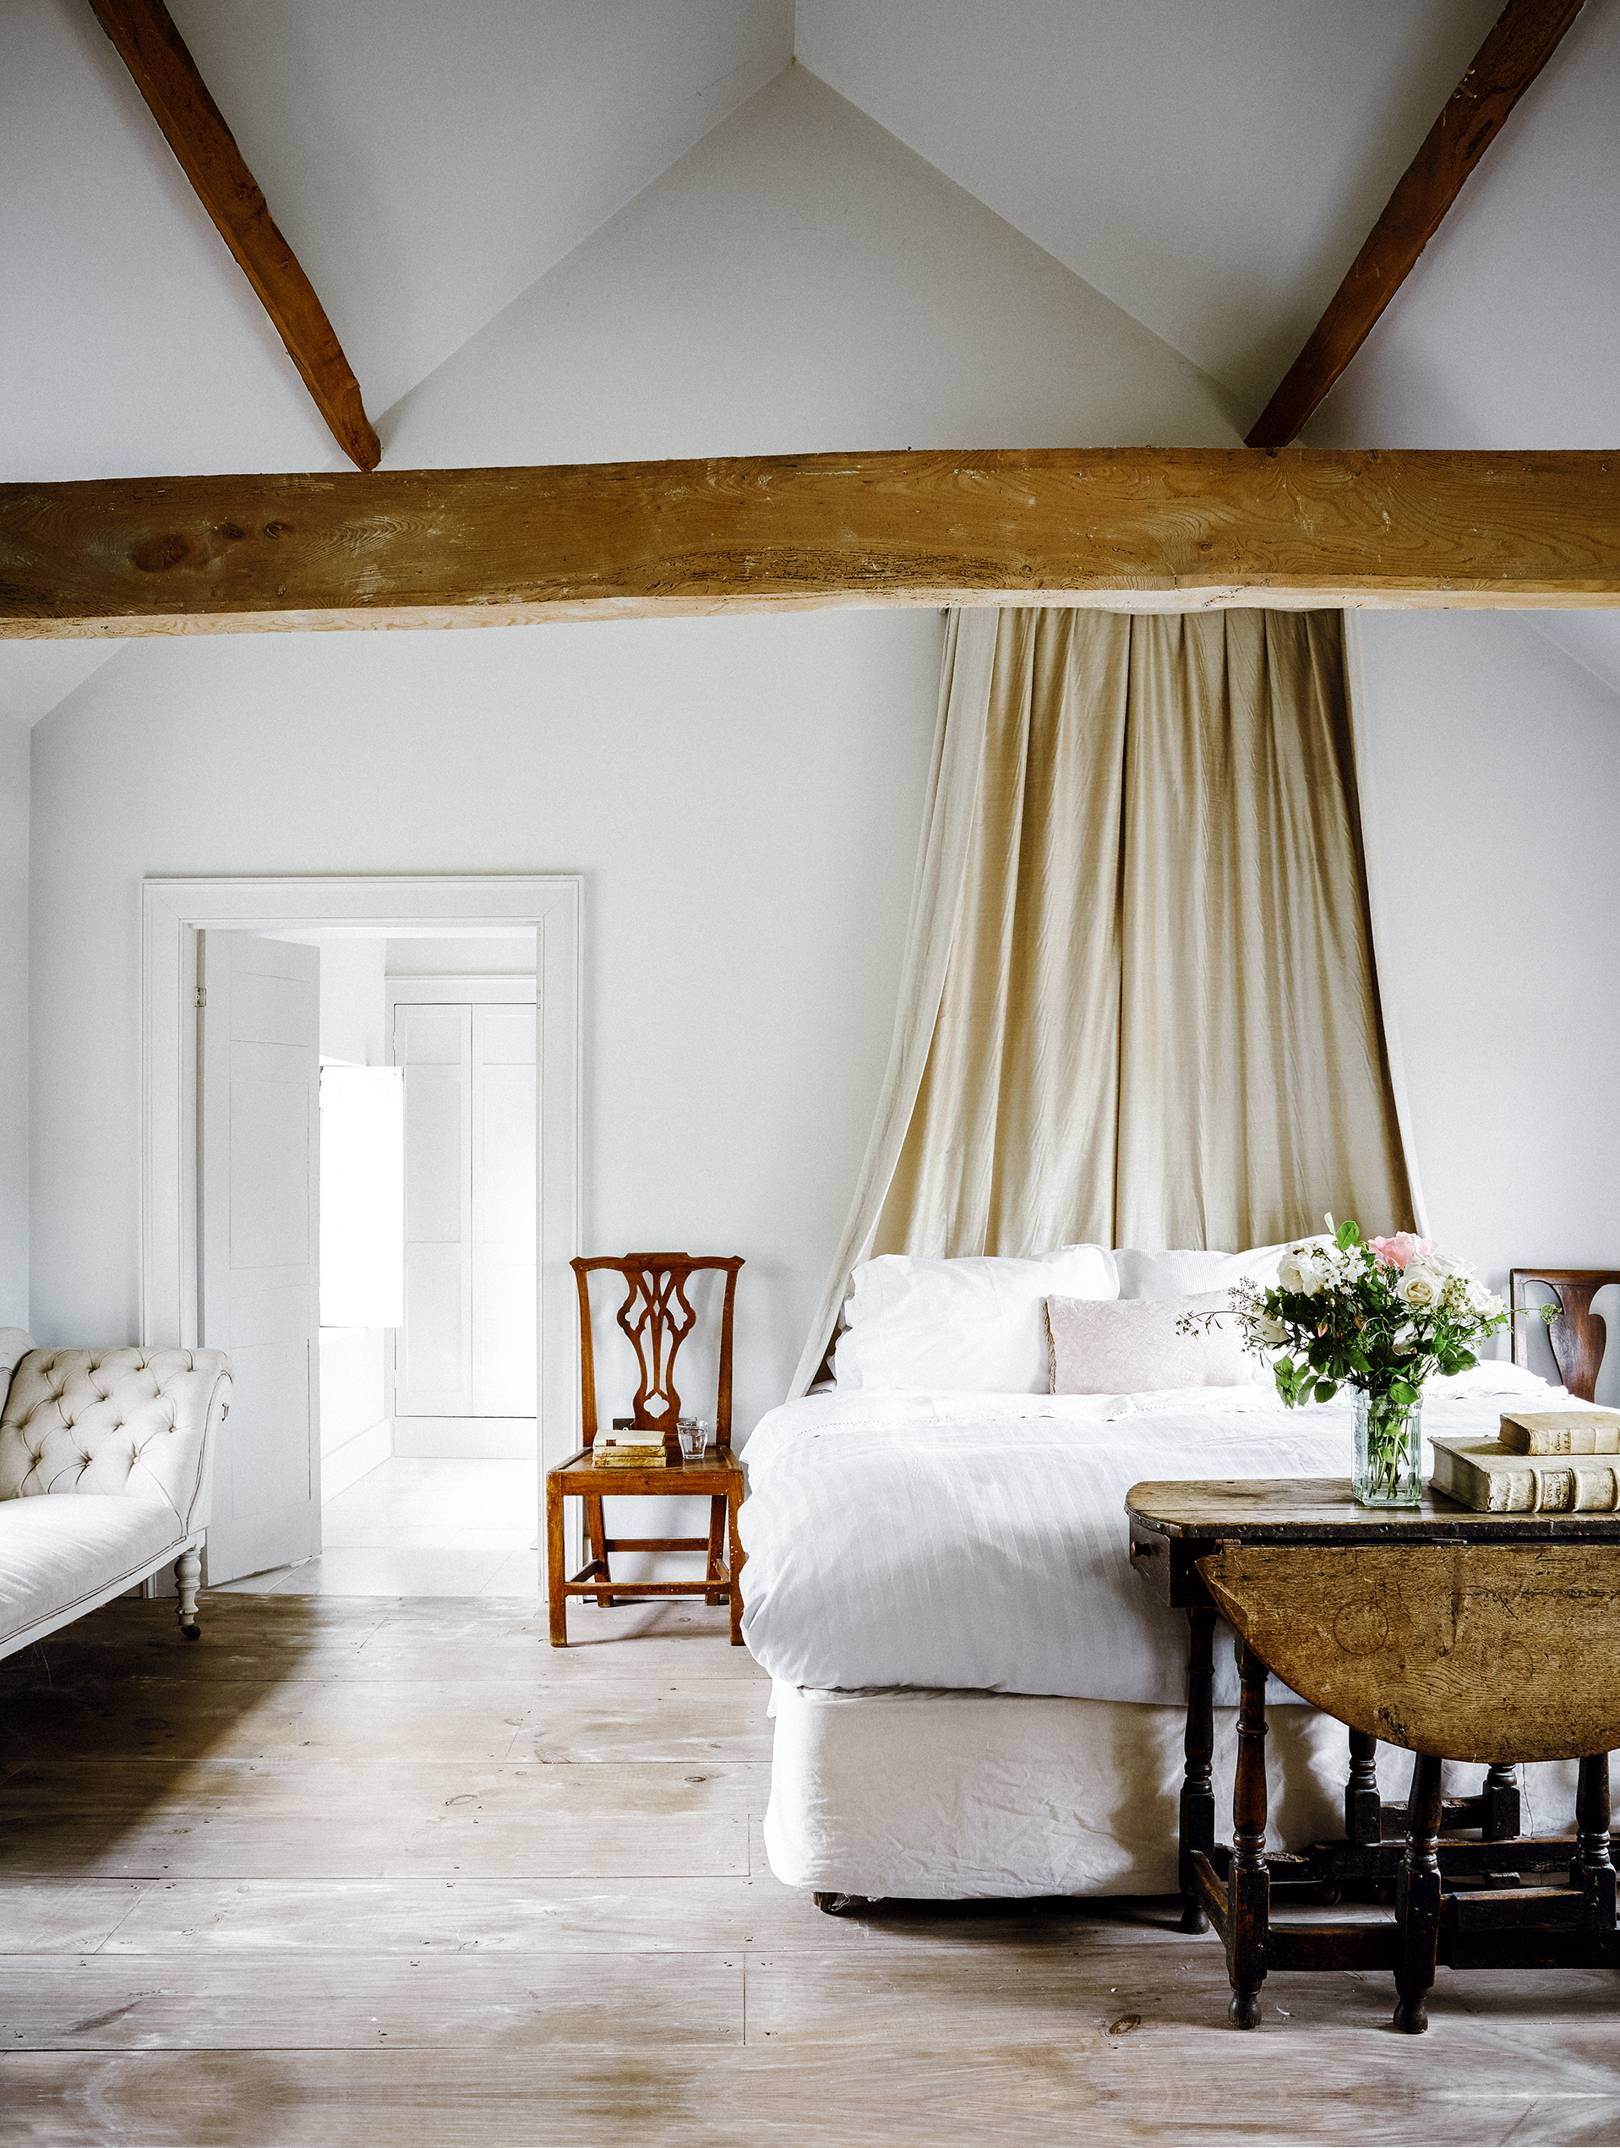 A weavers' cottage lovingly restored | House & Garden on late 19th century house plans, 18th century luxury, 18th century bed, 18th century magazines, 18th century american farmhouses, 18th century floor plans, 18th century classical, 18th century cottage house plans, 18th century france, 18 century victorian house plans, 18th century cape cod house plans, 18th century barn plans, 18th century log cabins, 19th century mansion house plans, 18th century colonial houses, 18th century french estates, 18th century cooking equipment, 18th century living, 18th century house design, 18th century books,